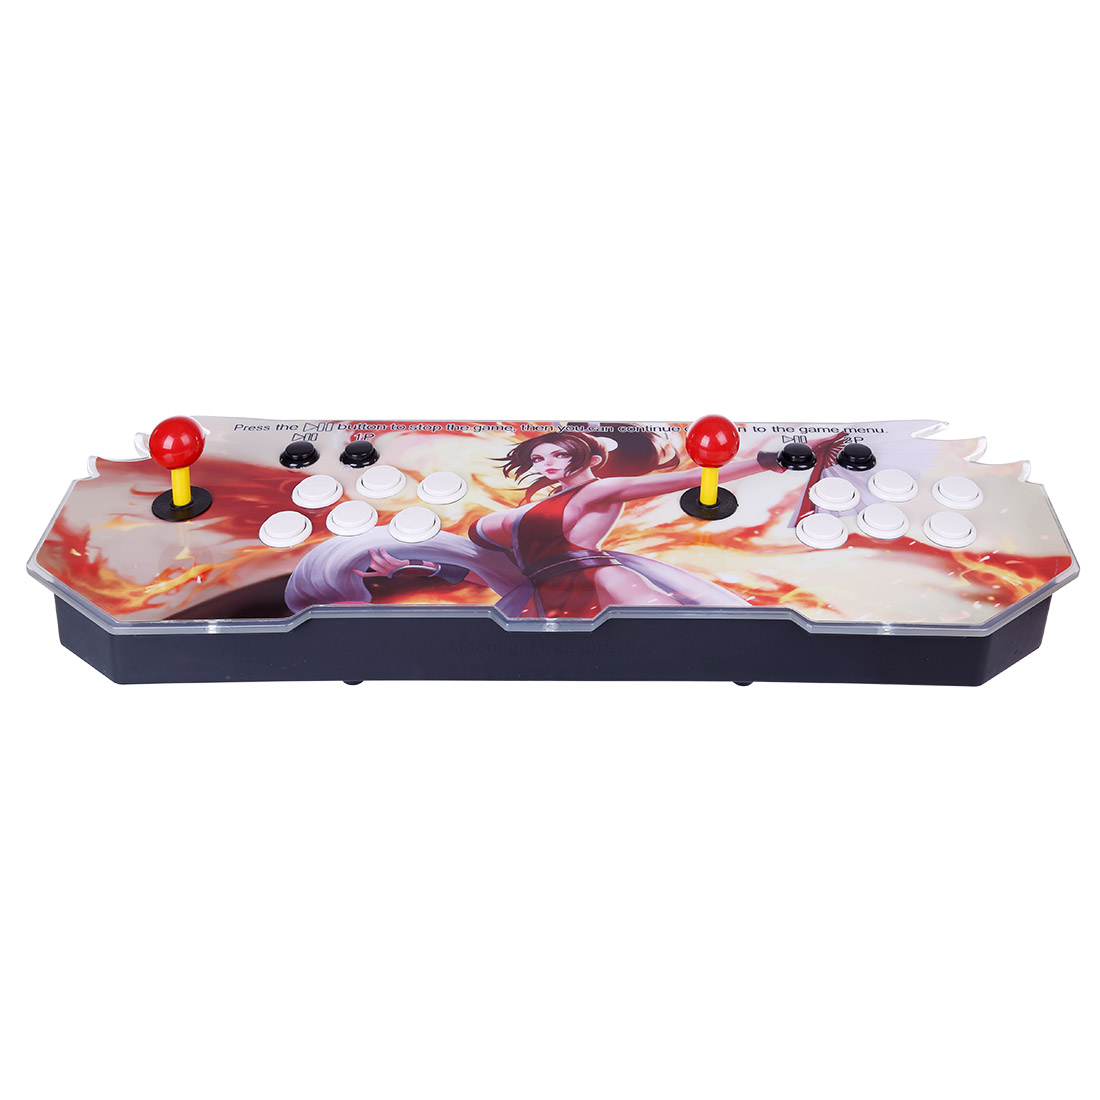 Pandora Box 11S 3003 Games Multi-player Arcade Game Console (Artwork: Mai Shiranui)  (ABS Plastic Body)